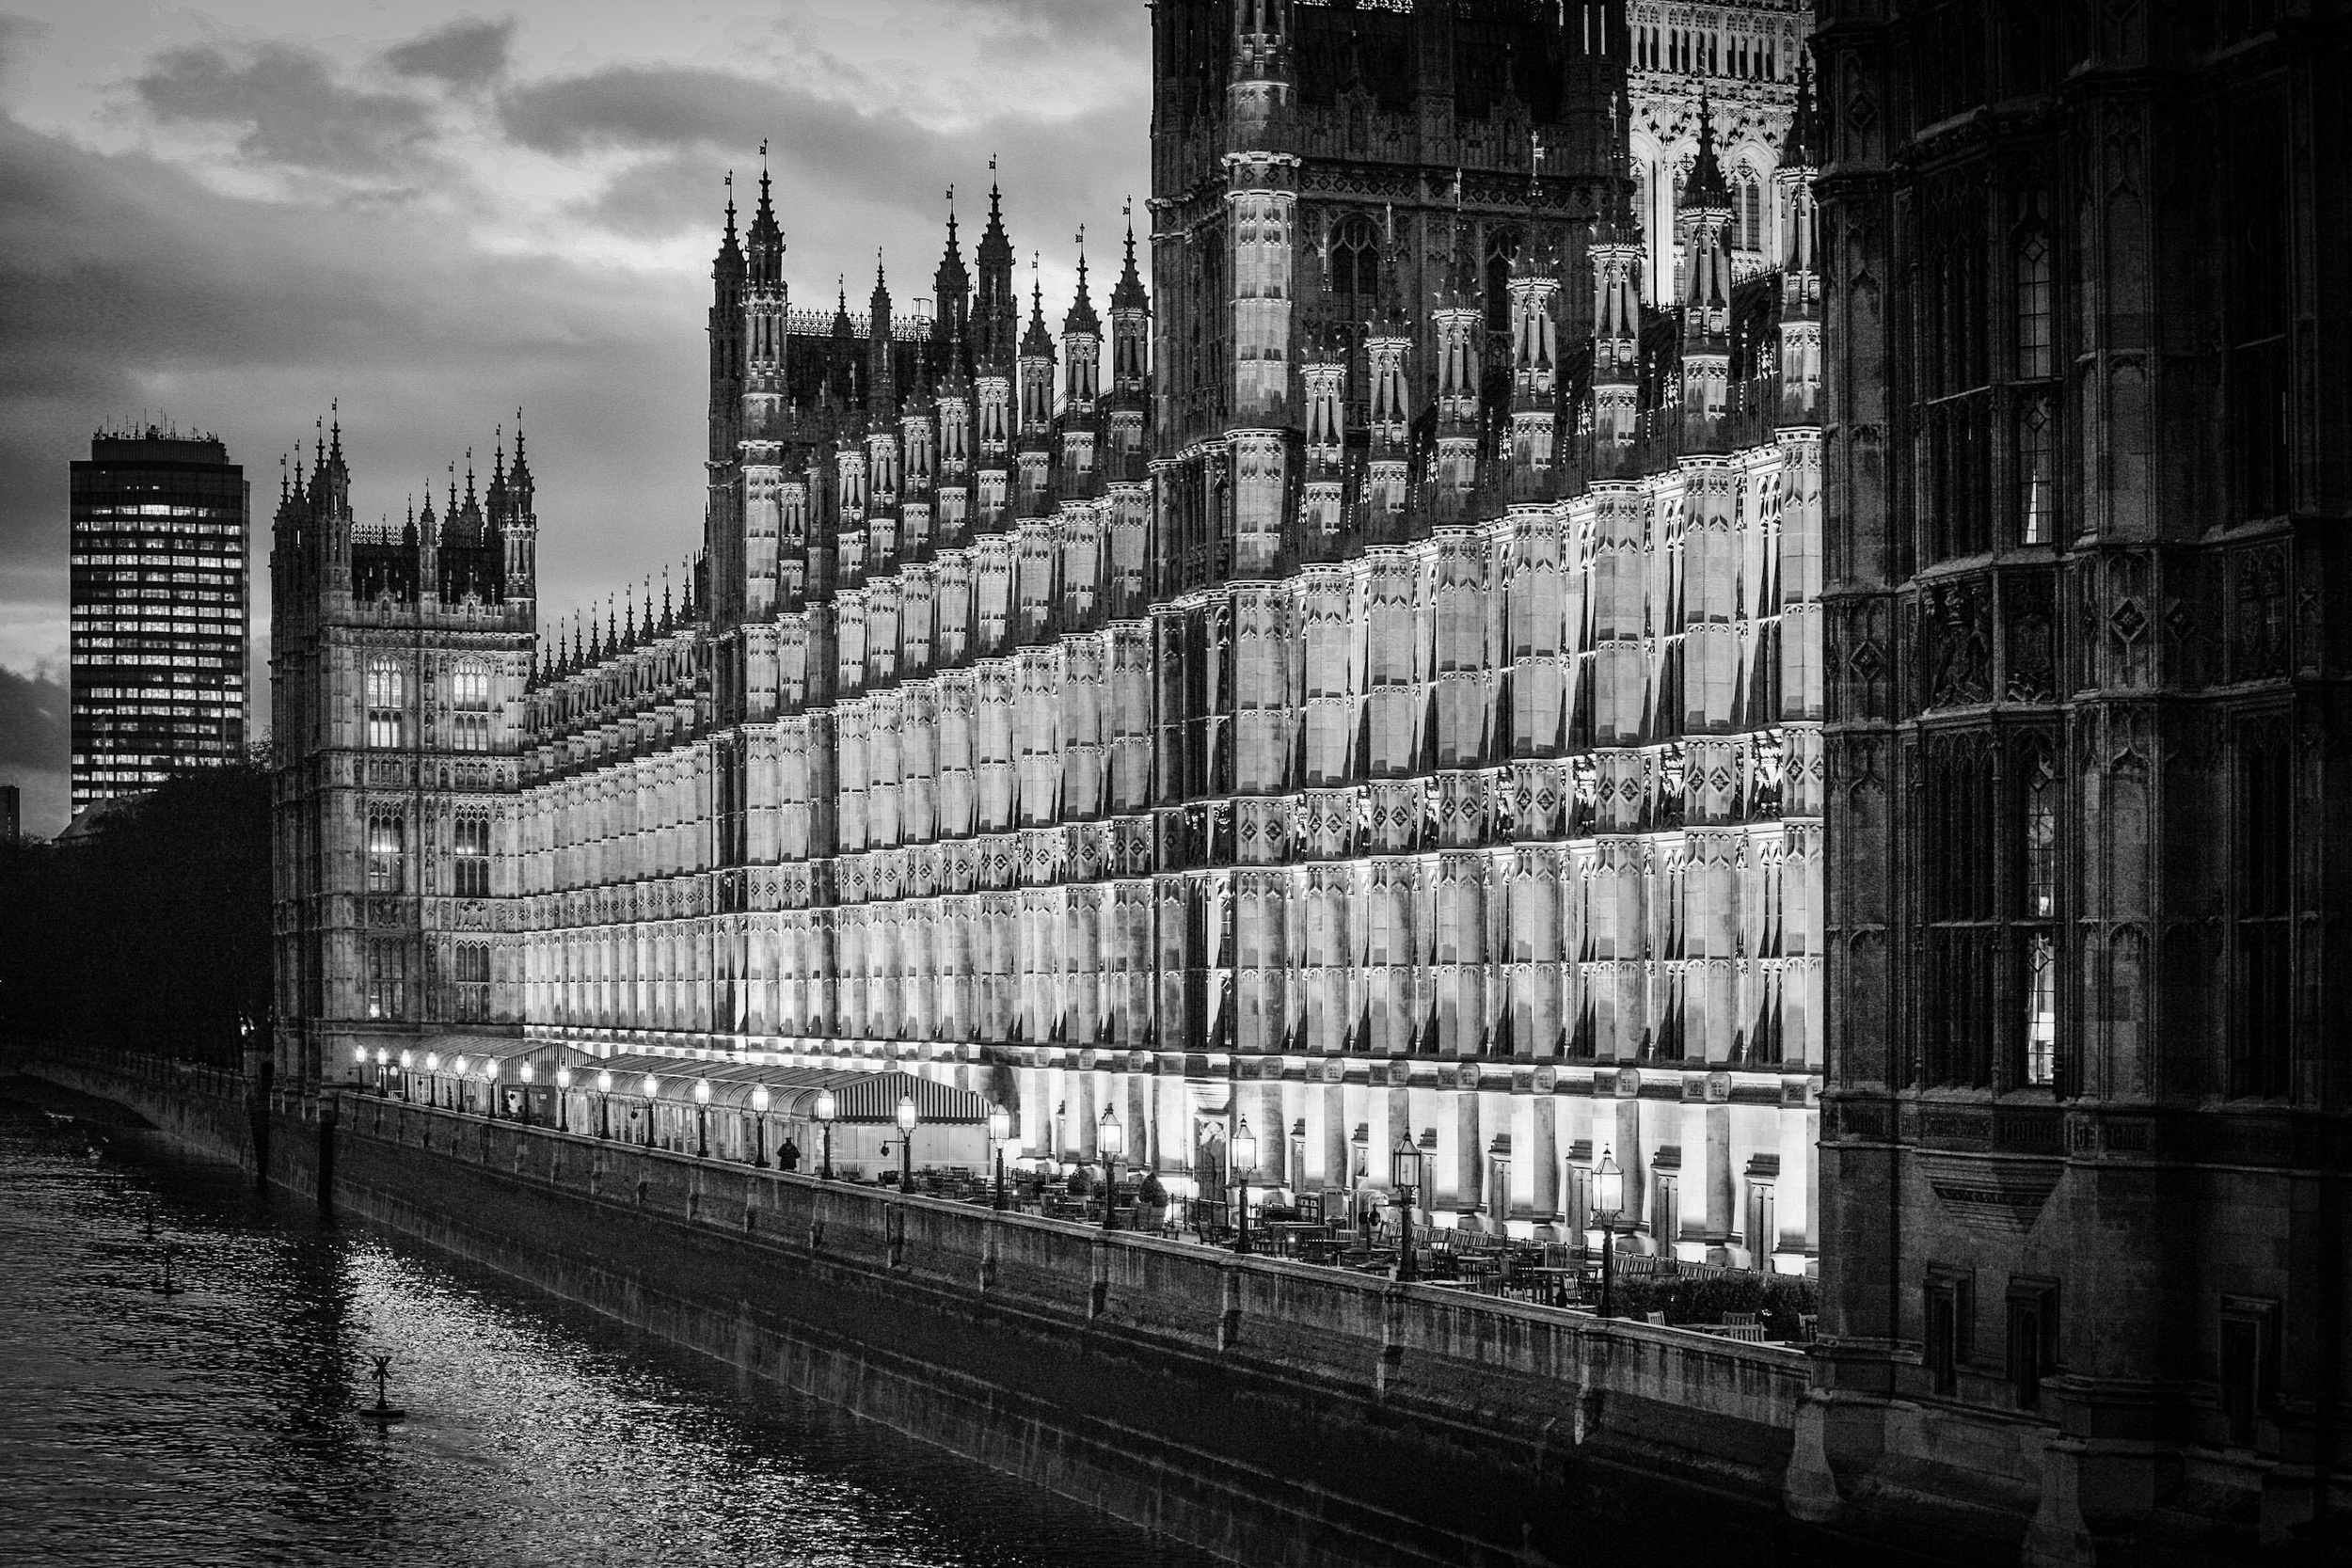 House of Commons meeting here now at the Palace of Westminster